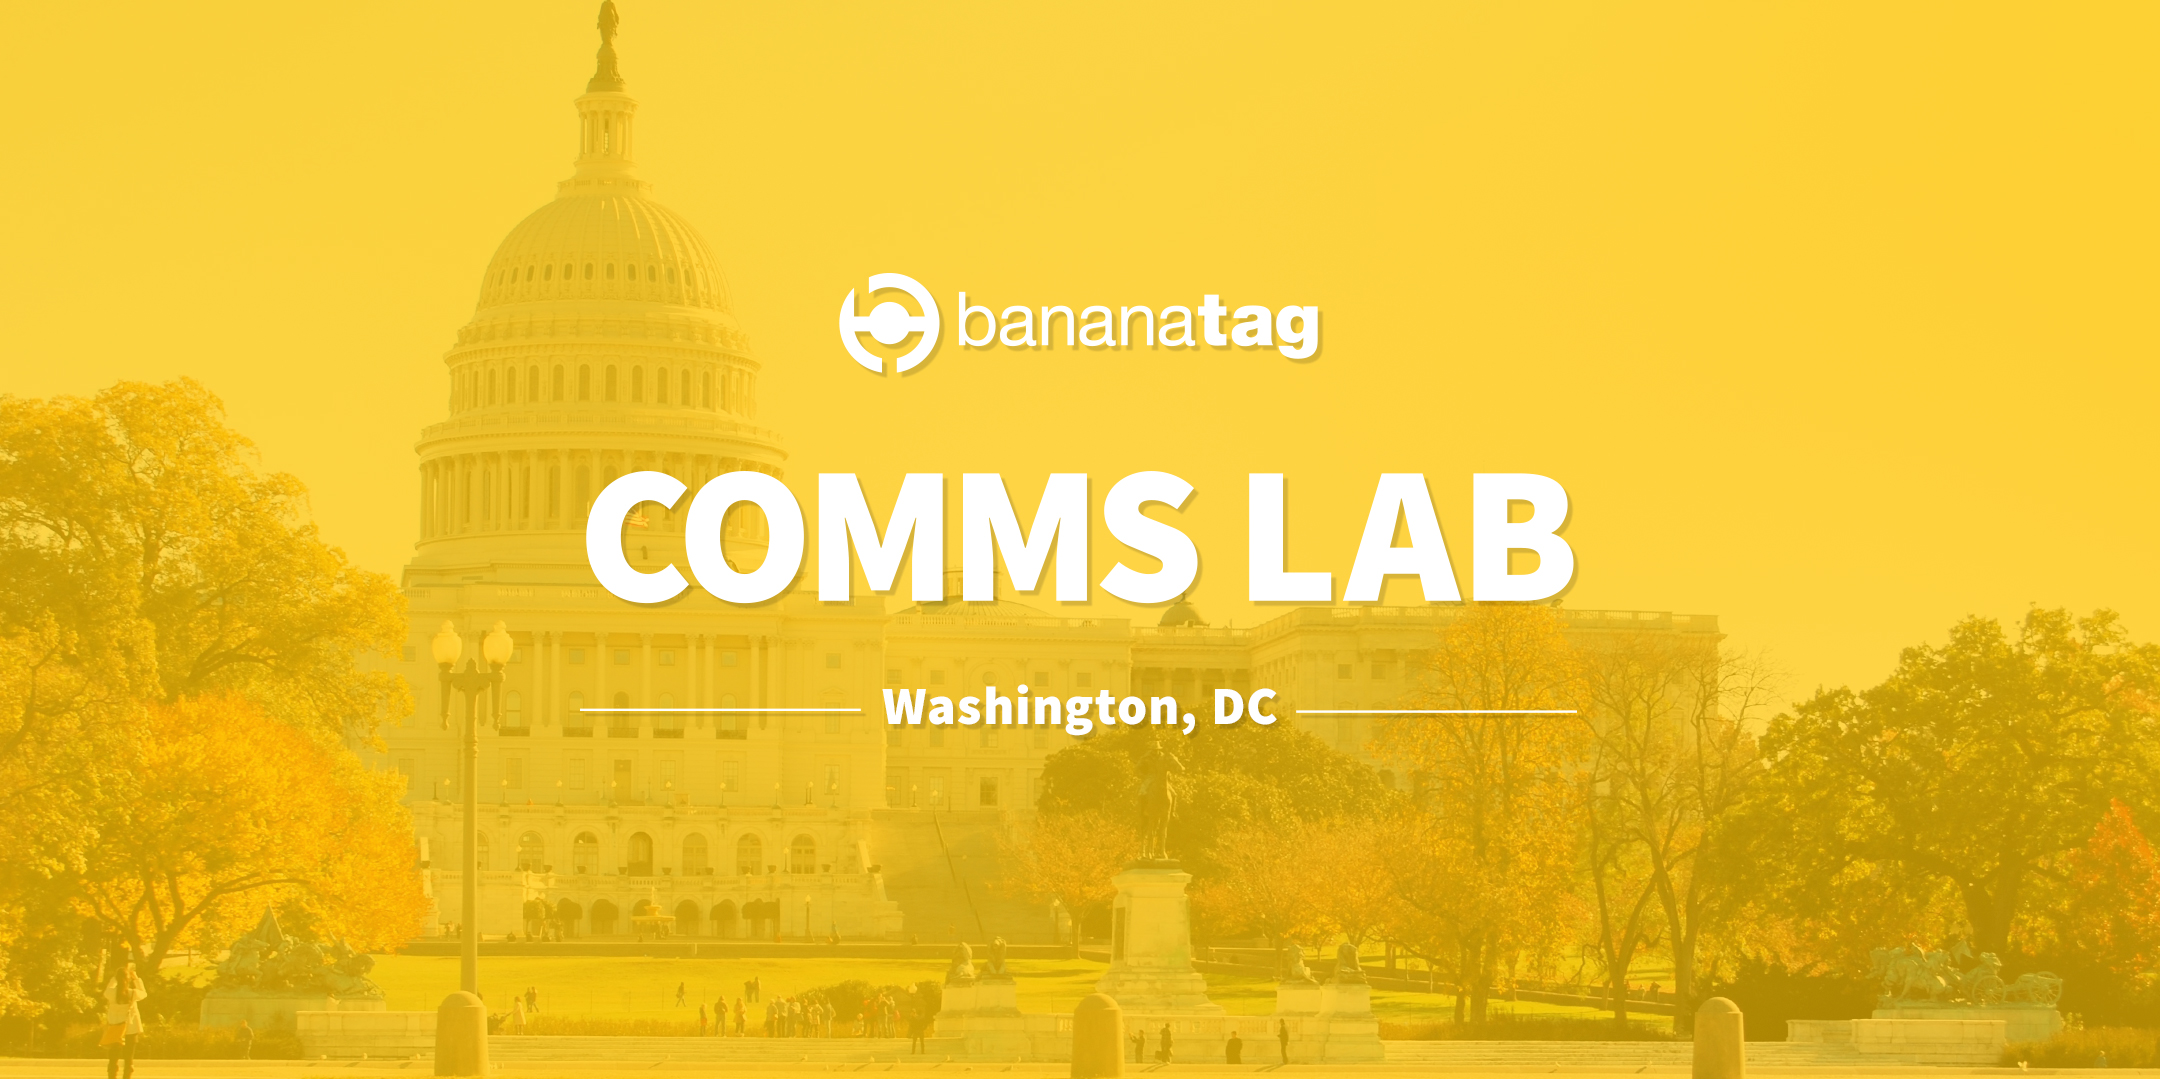 Join us at Comms Lab in Washington, DC [August 20th, 2019]